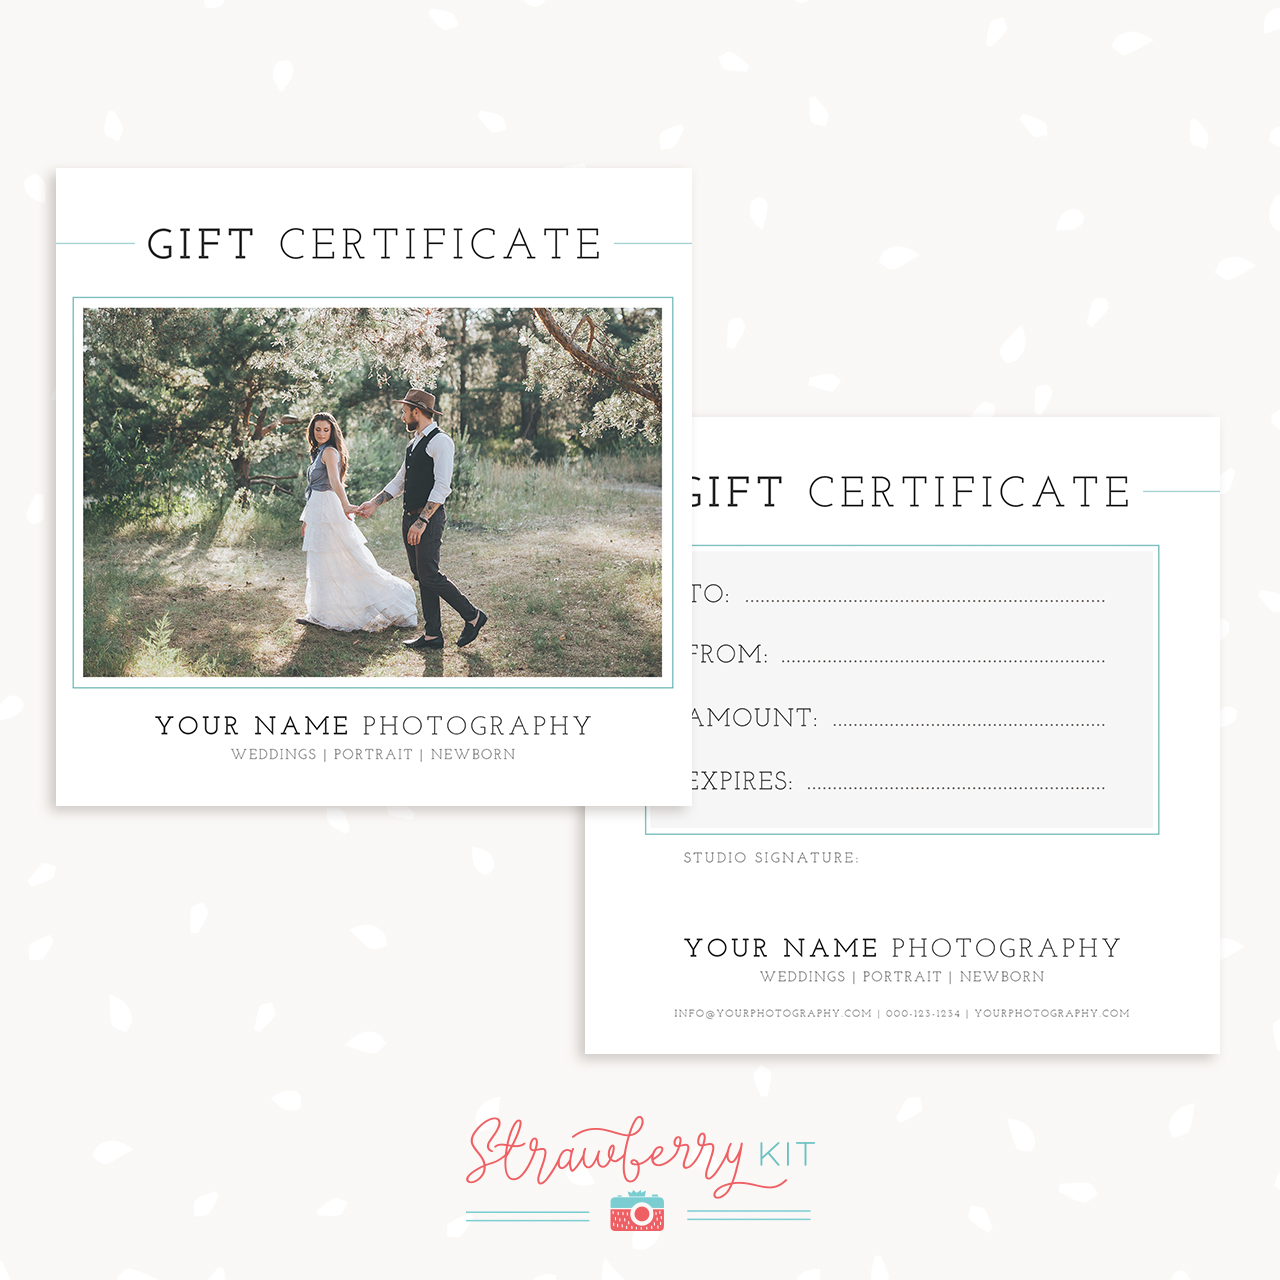 Classic Photography Gift Certificate Template Strawberry Kit